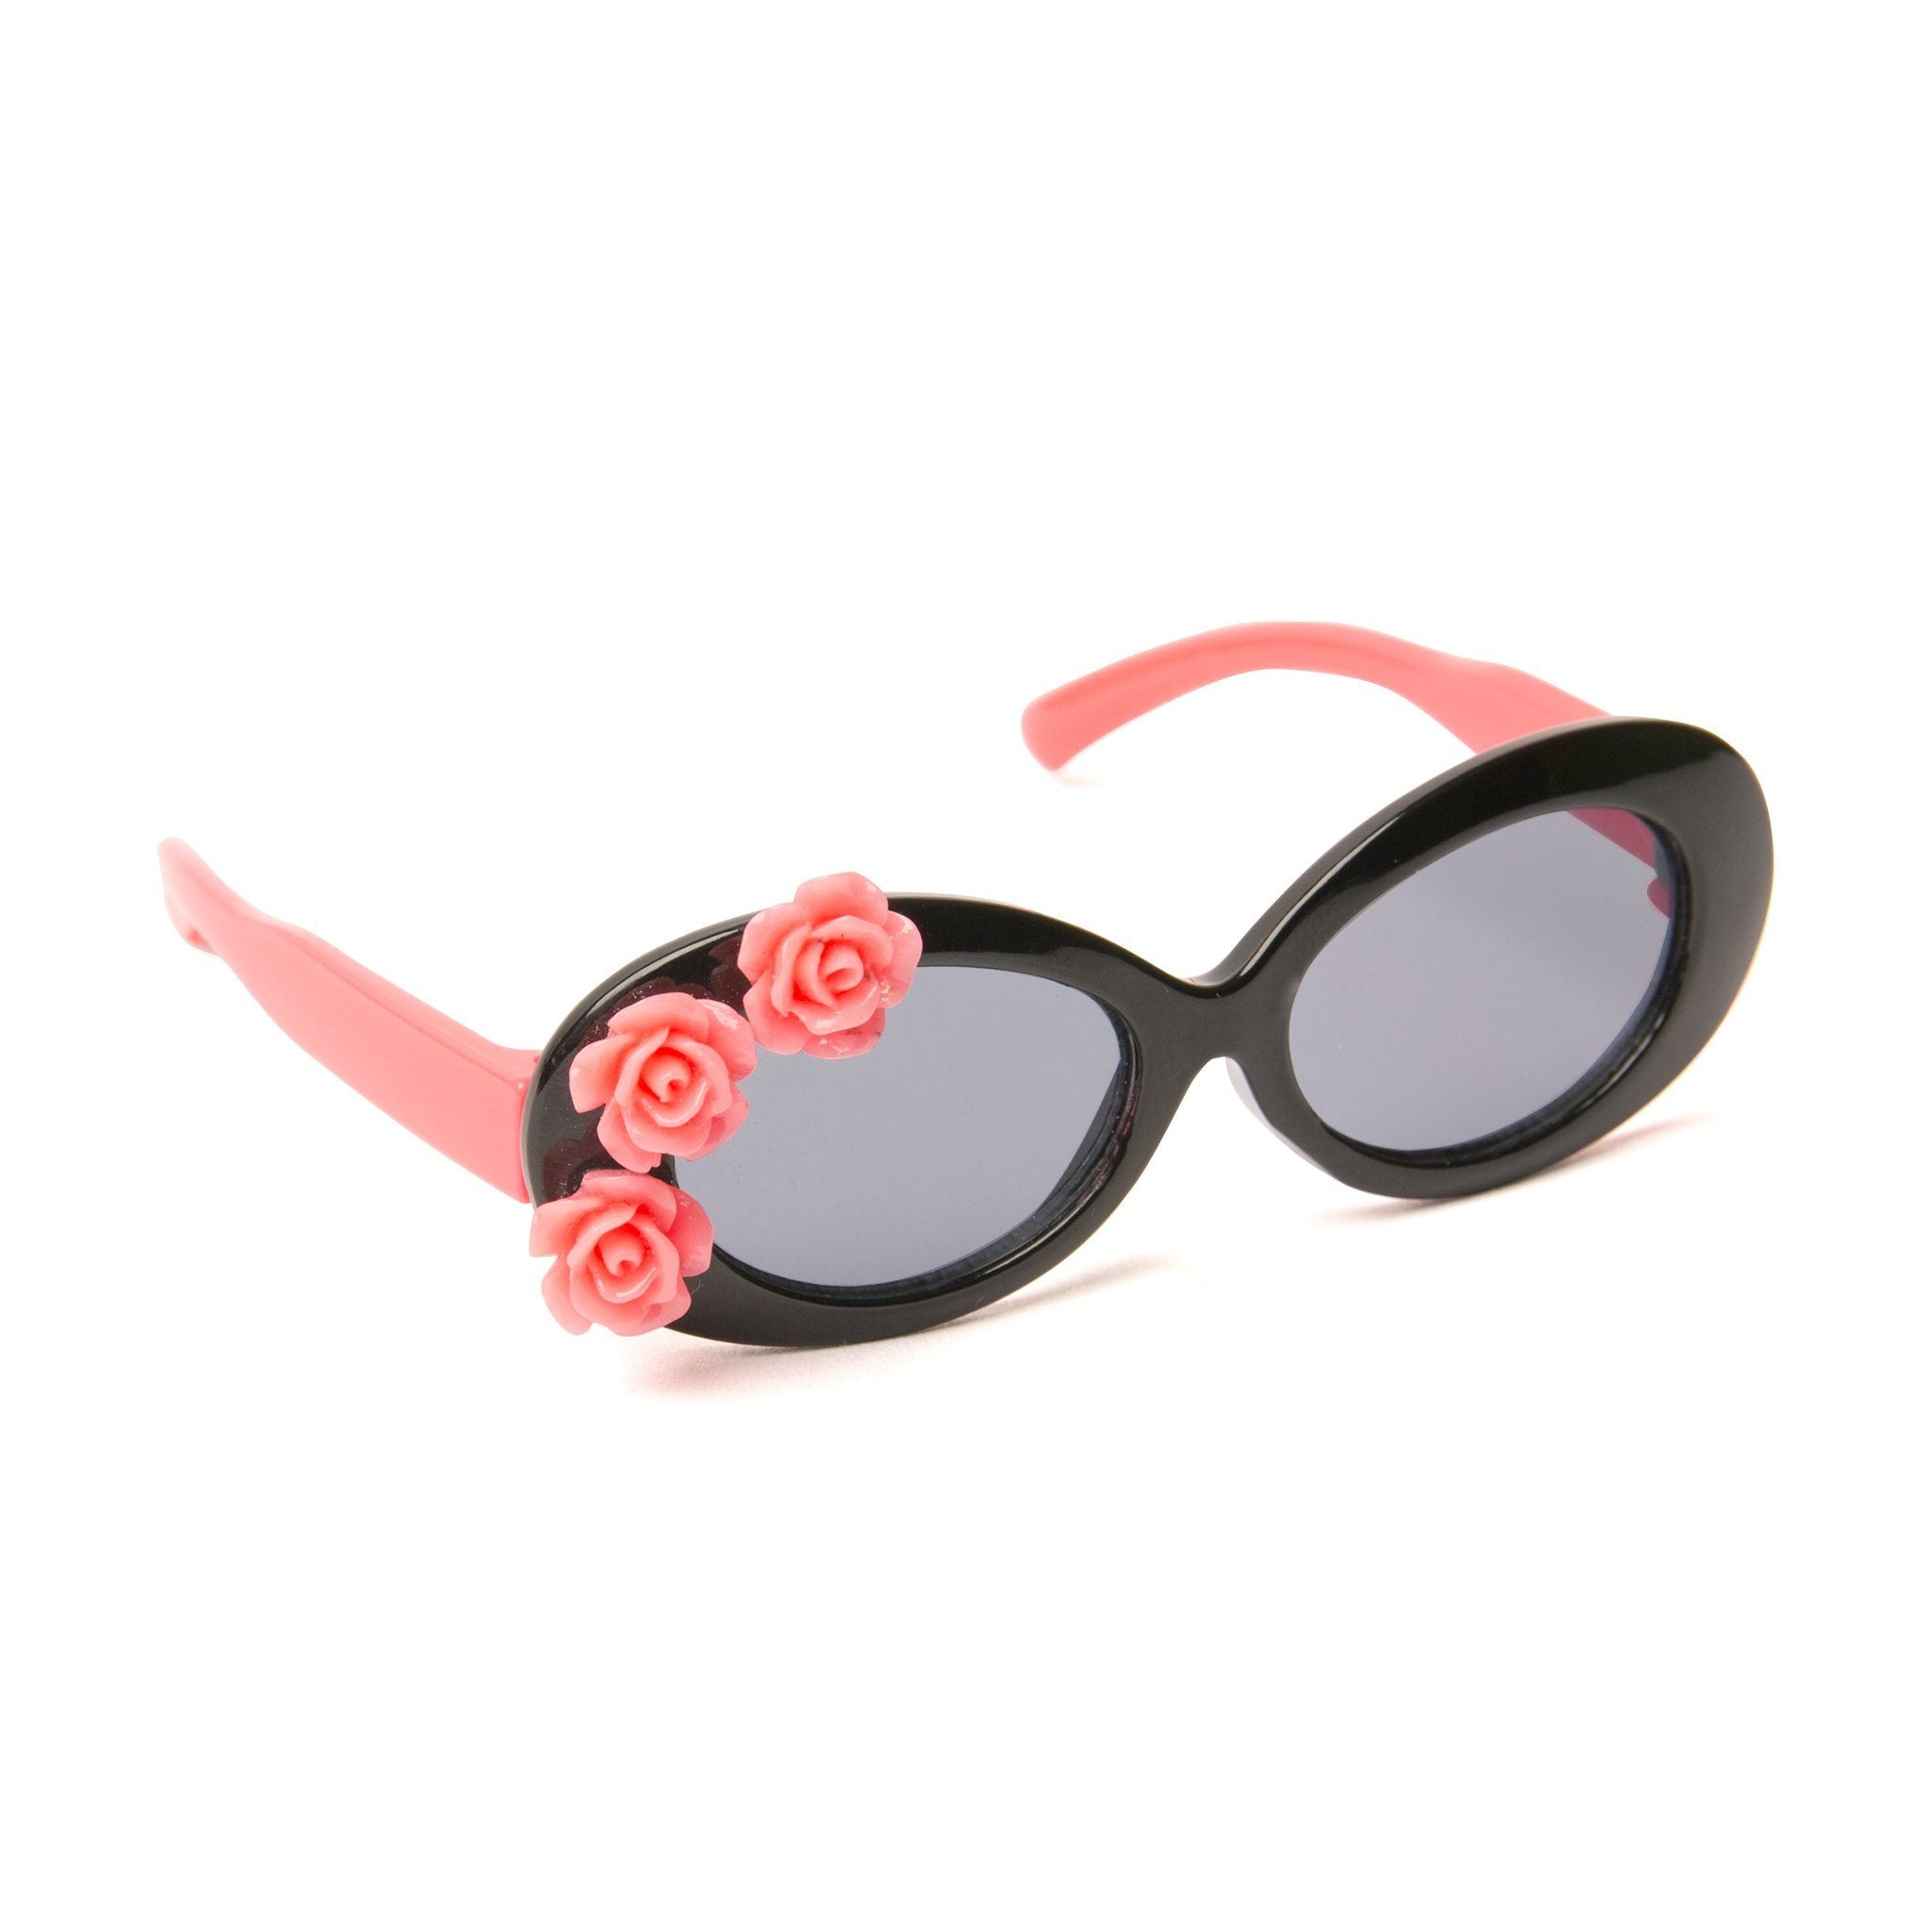 Surf's Up pink and black sunglasses with flower appliqué. Fits all 18 inch dolls.